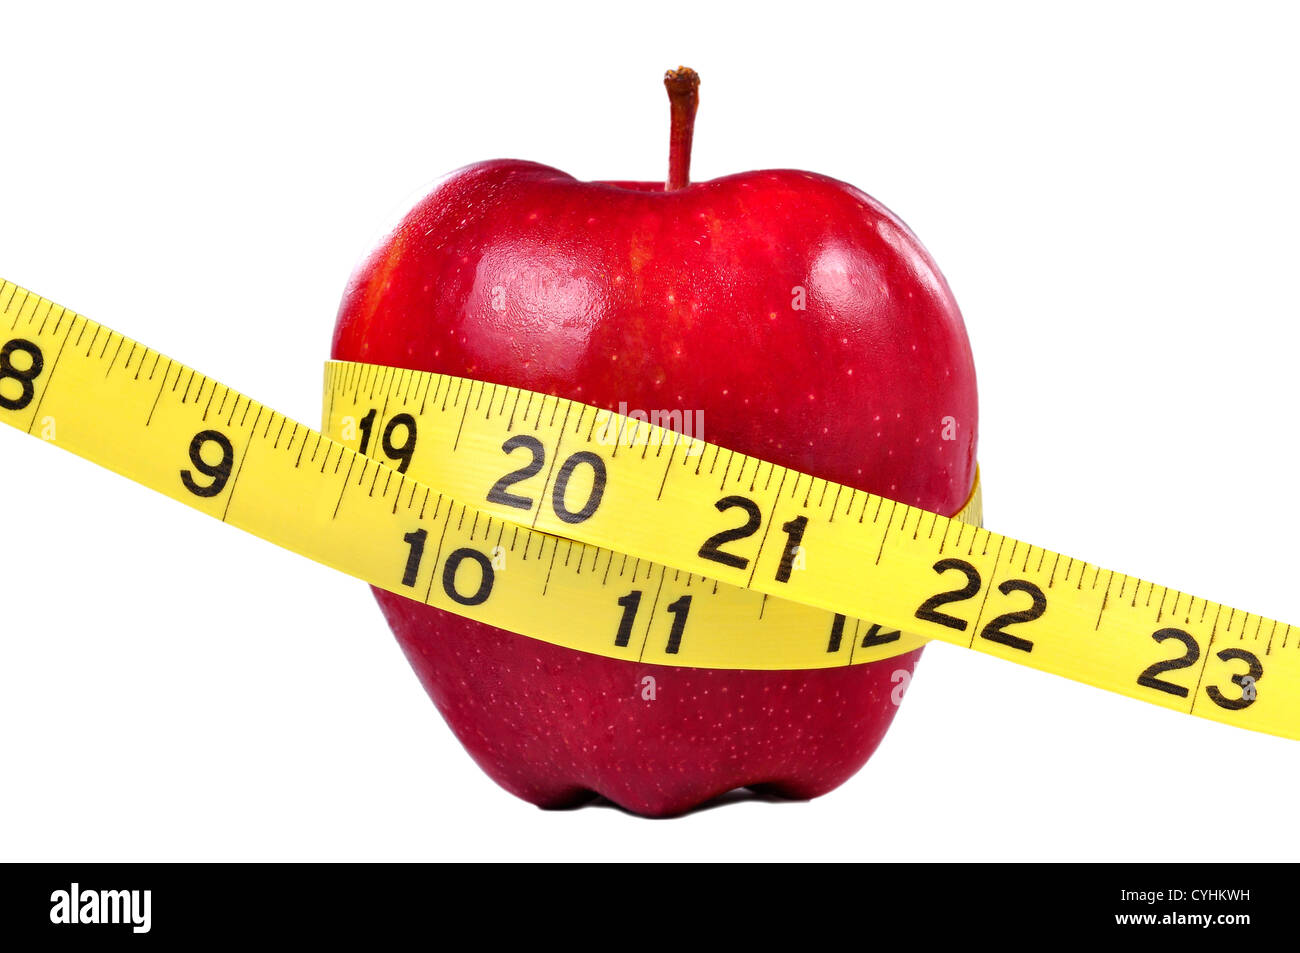 Red apple and yellow measuring tape to symbolize an healthy diet and body weight control. - Stock Image